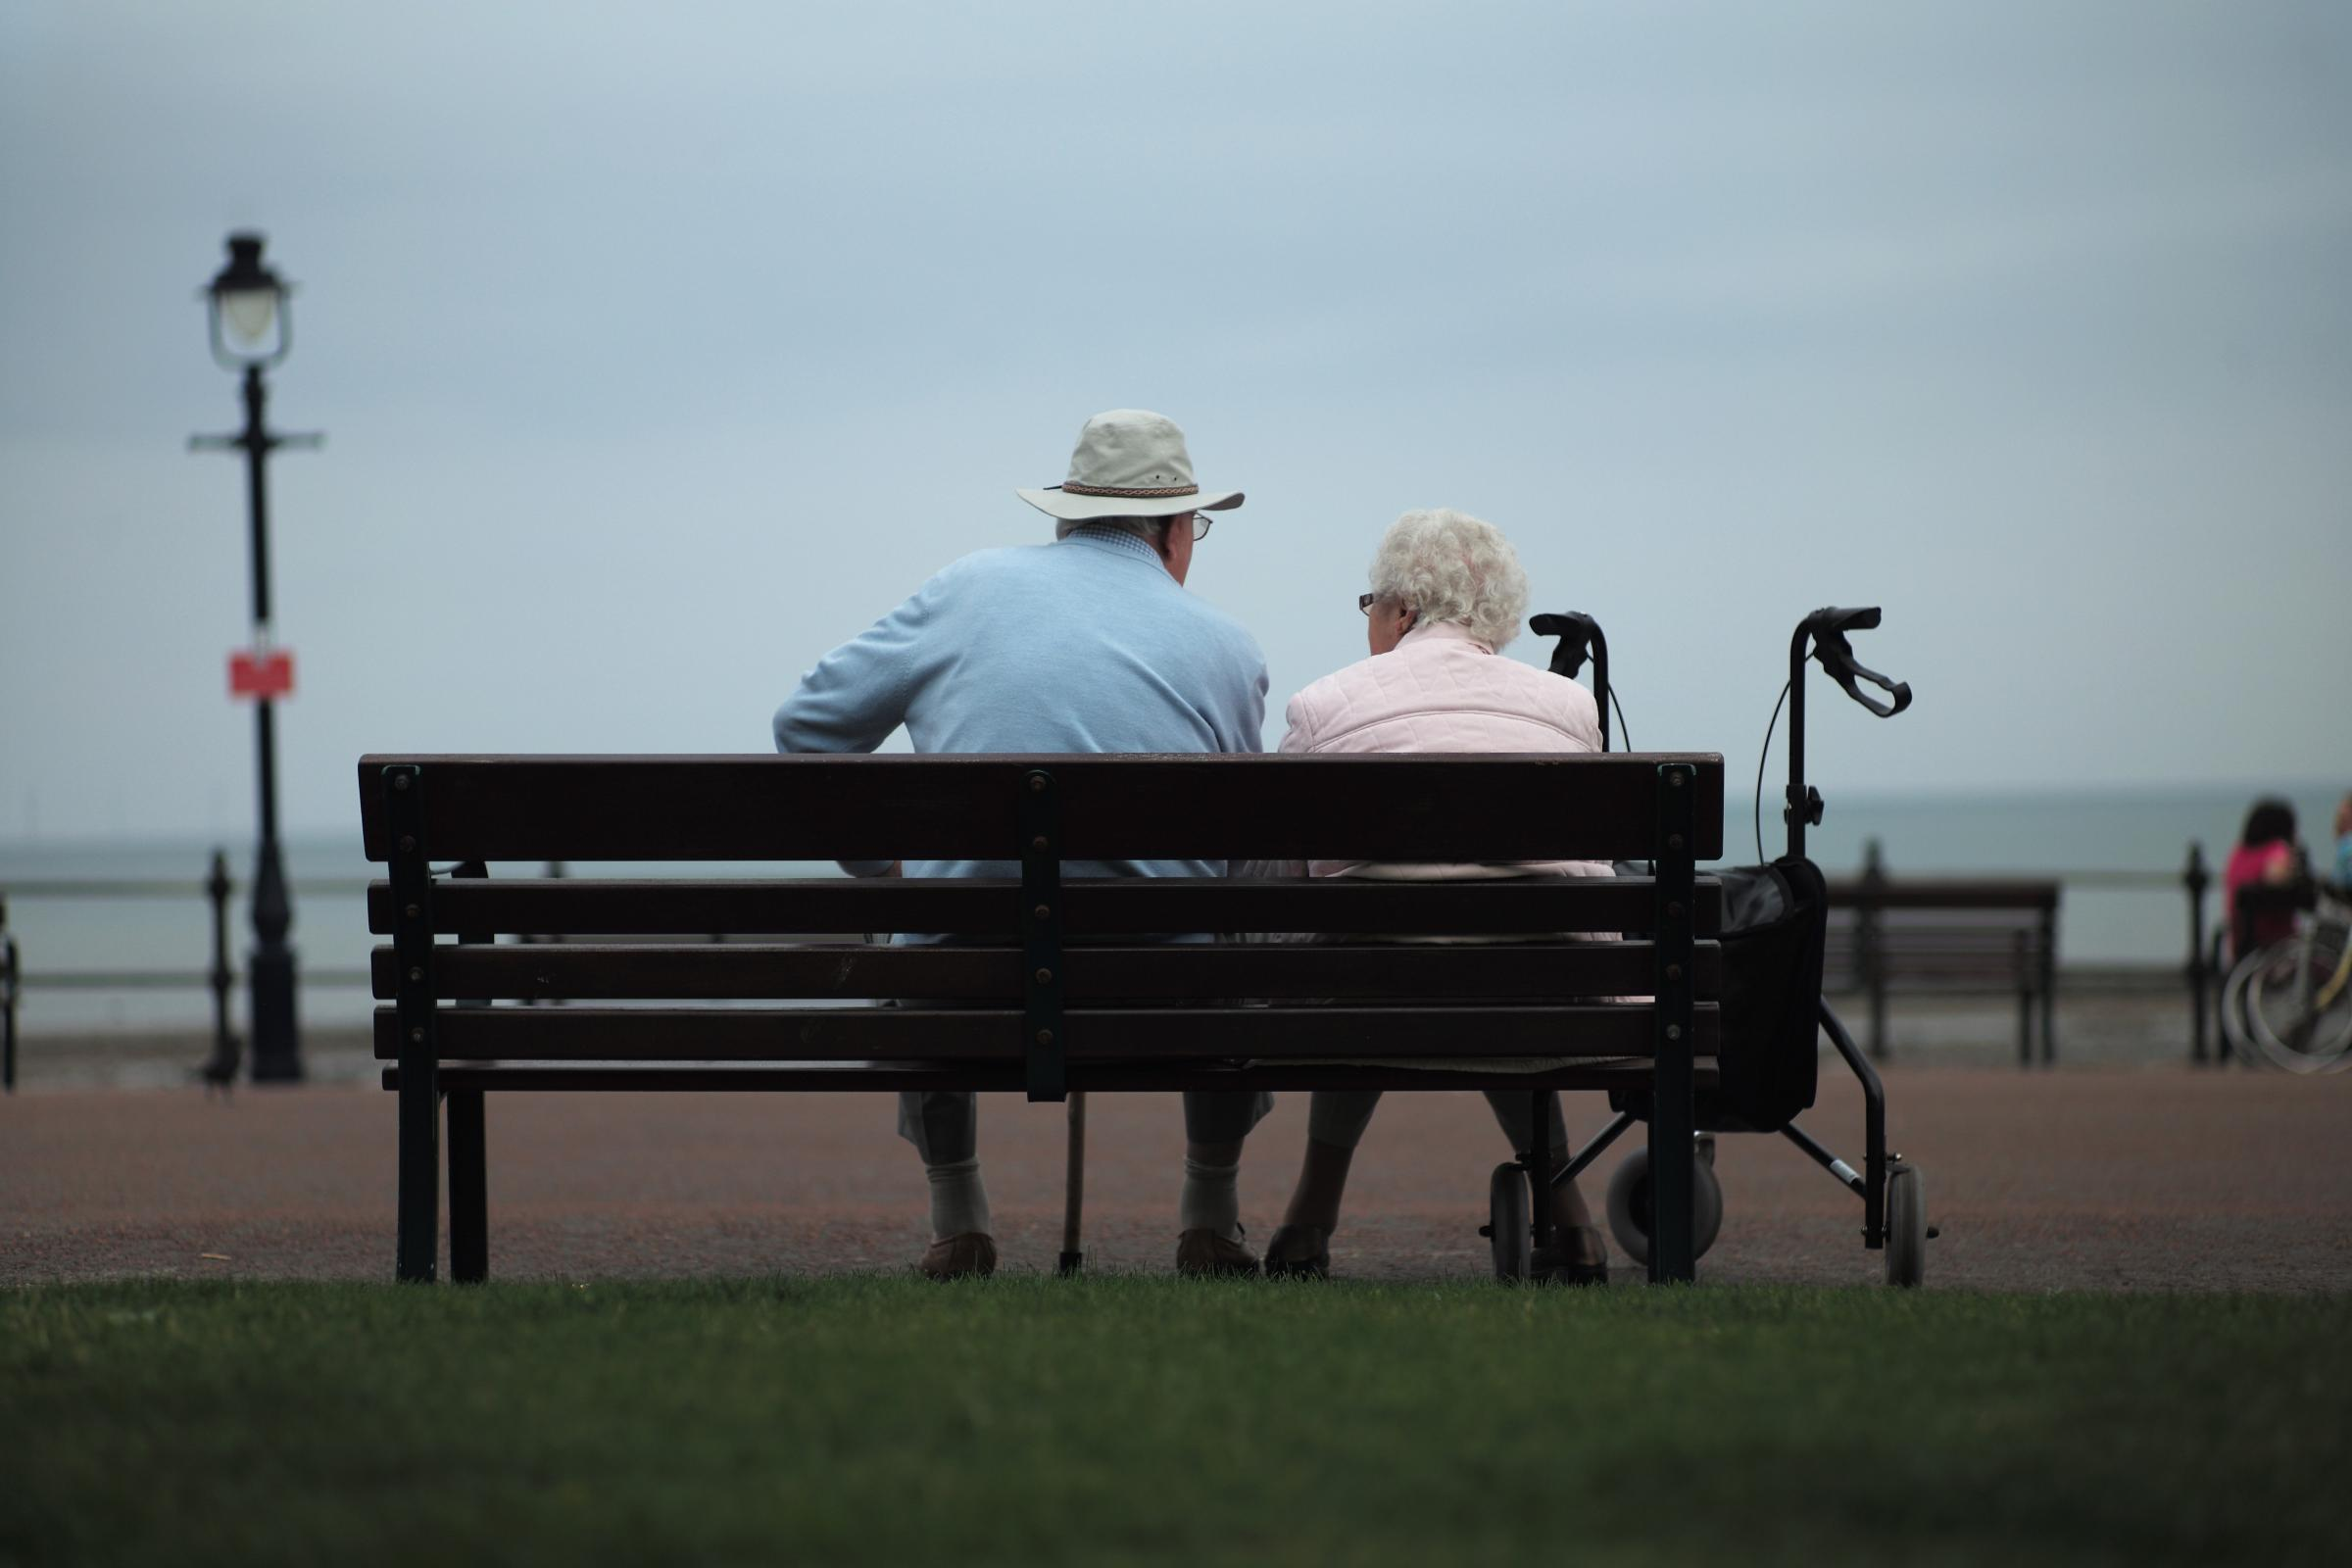 This is the case for Scotland to set up a single national pension fund